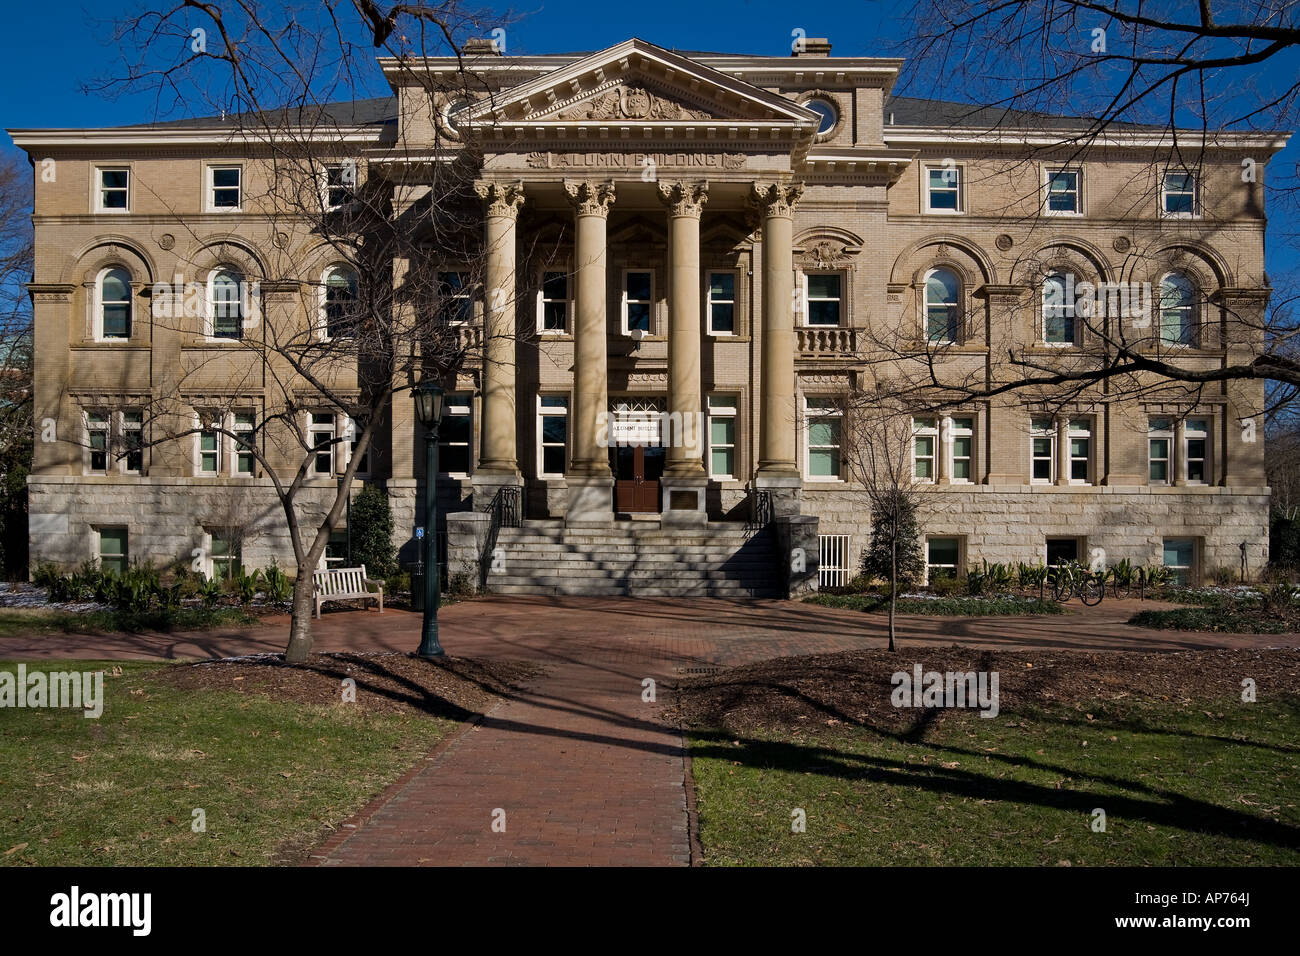 The Front of the Alumni Building of the University of North Carolina in Chapel Hill UNC - Stock Image